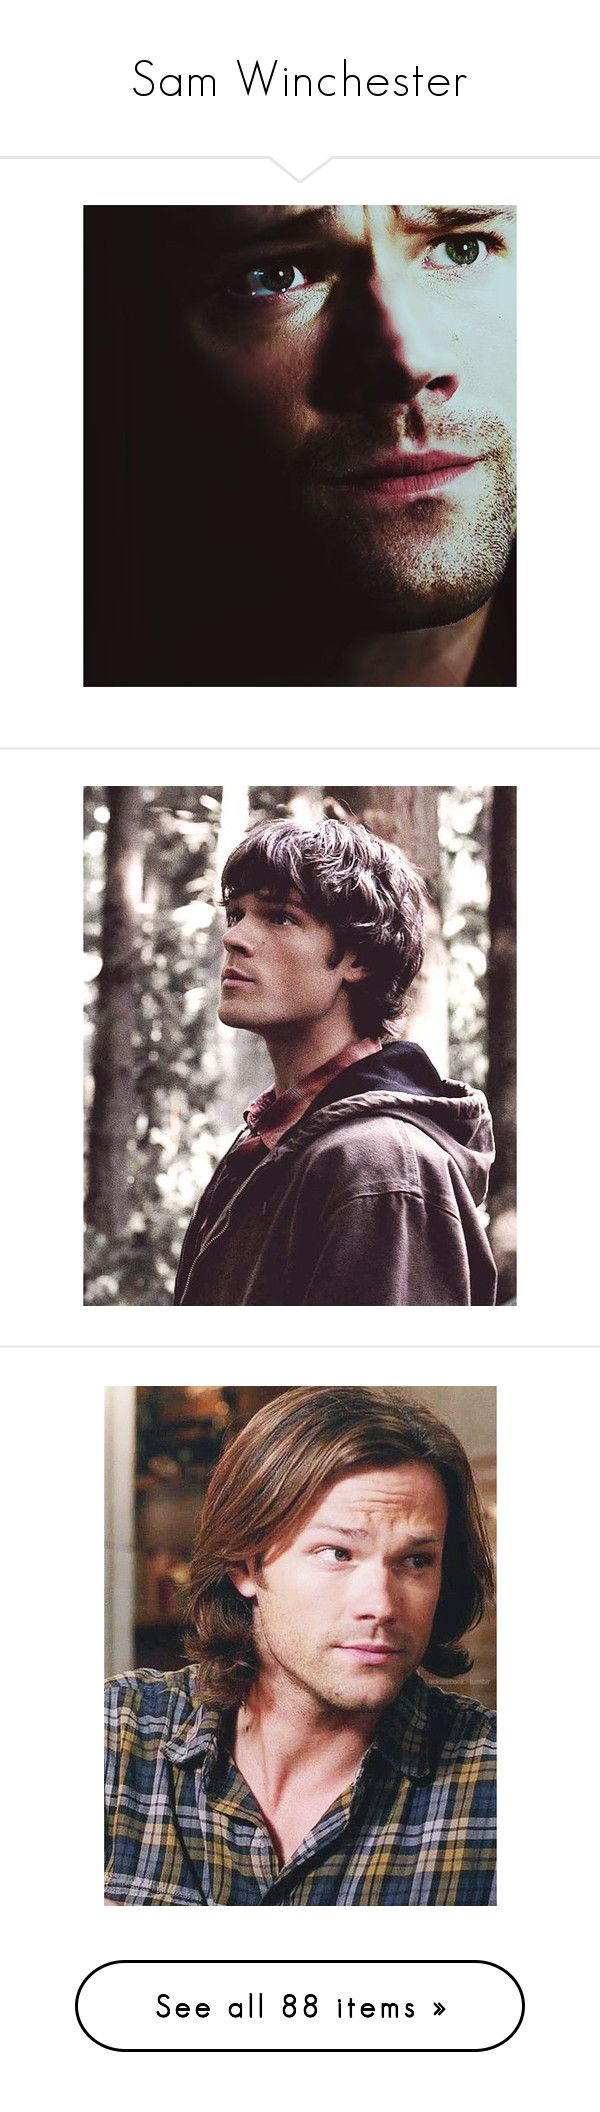 """""""Sam Winchester"""" by ronniethisisme ❤ liked on Polyvore featuring supernatural, pictures, people, sam winchester, spn, guys, celebrities, men, jared padalecki and tv shows"""